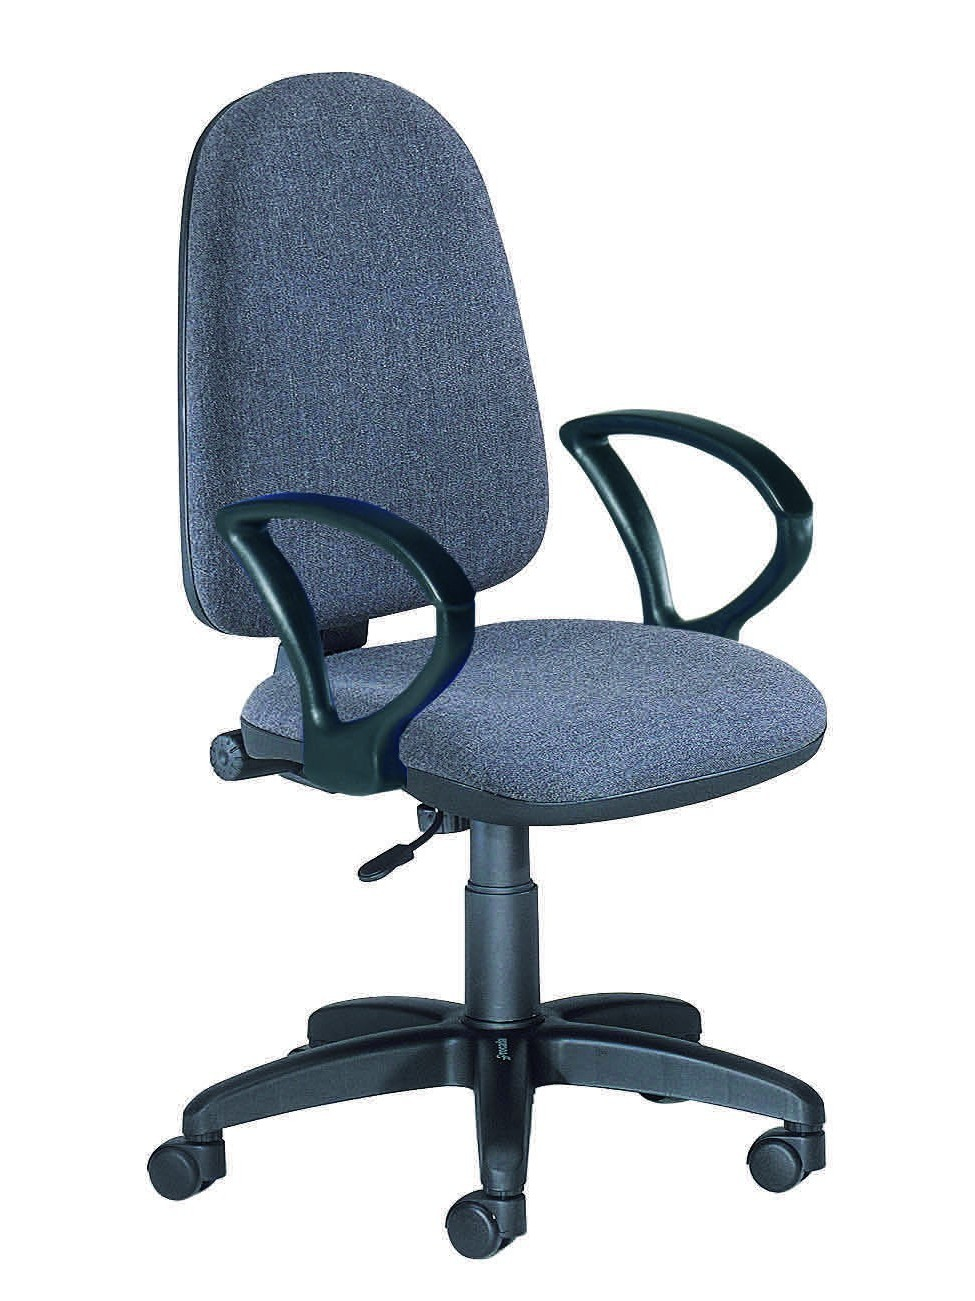 OFFICE CHAIR RD930/1 GREY IGNIFUGA FABRIC + GAME 'S ARMS